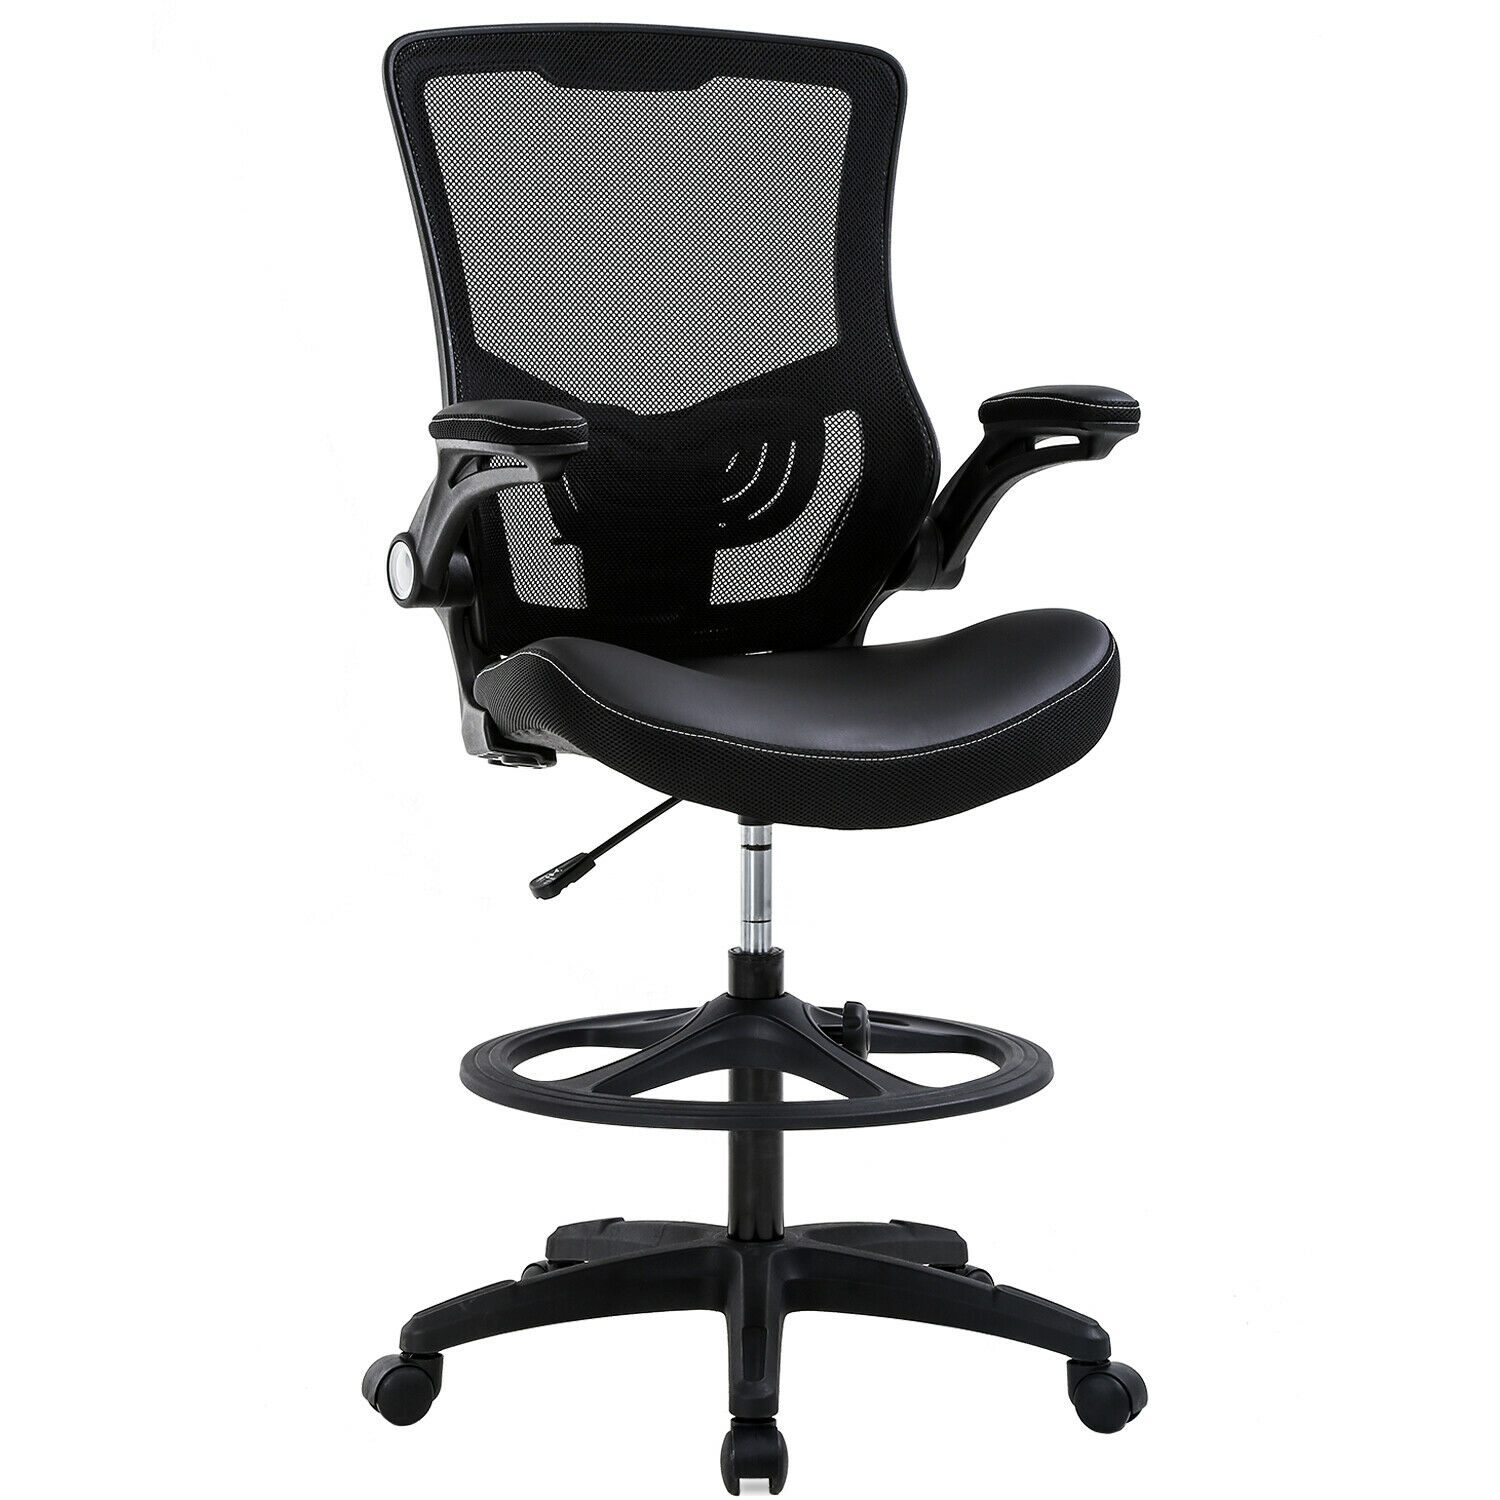 Image of: Drafting Chair Ergonomic Tall Office Chair With Flip Up Arms Foot Rest Back Support Adjustable Height Mesh Drafting Stool For Standing Desk Black Walmart Com Walmart Com